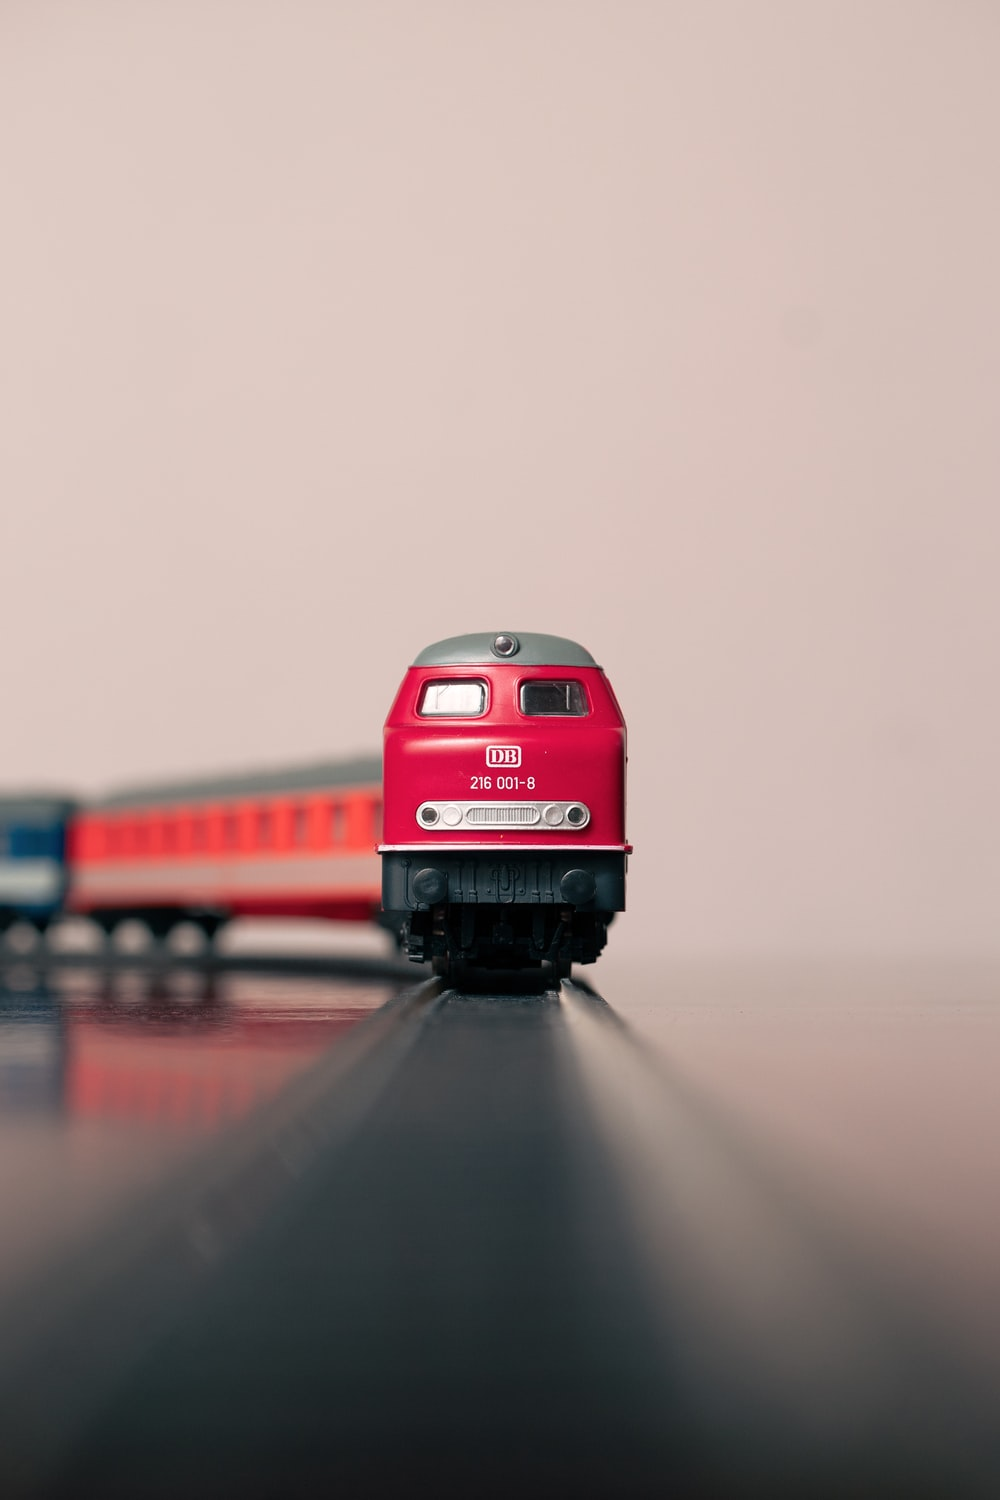 red and black train toy